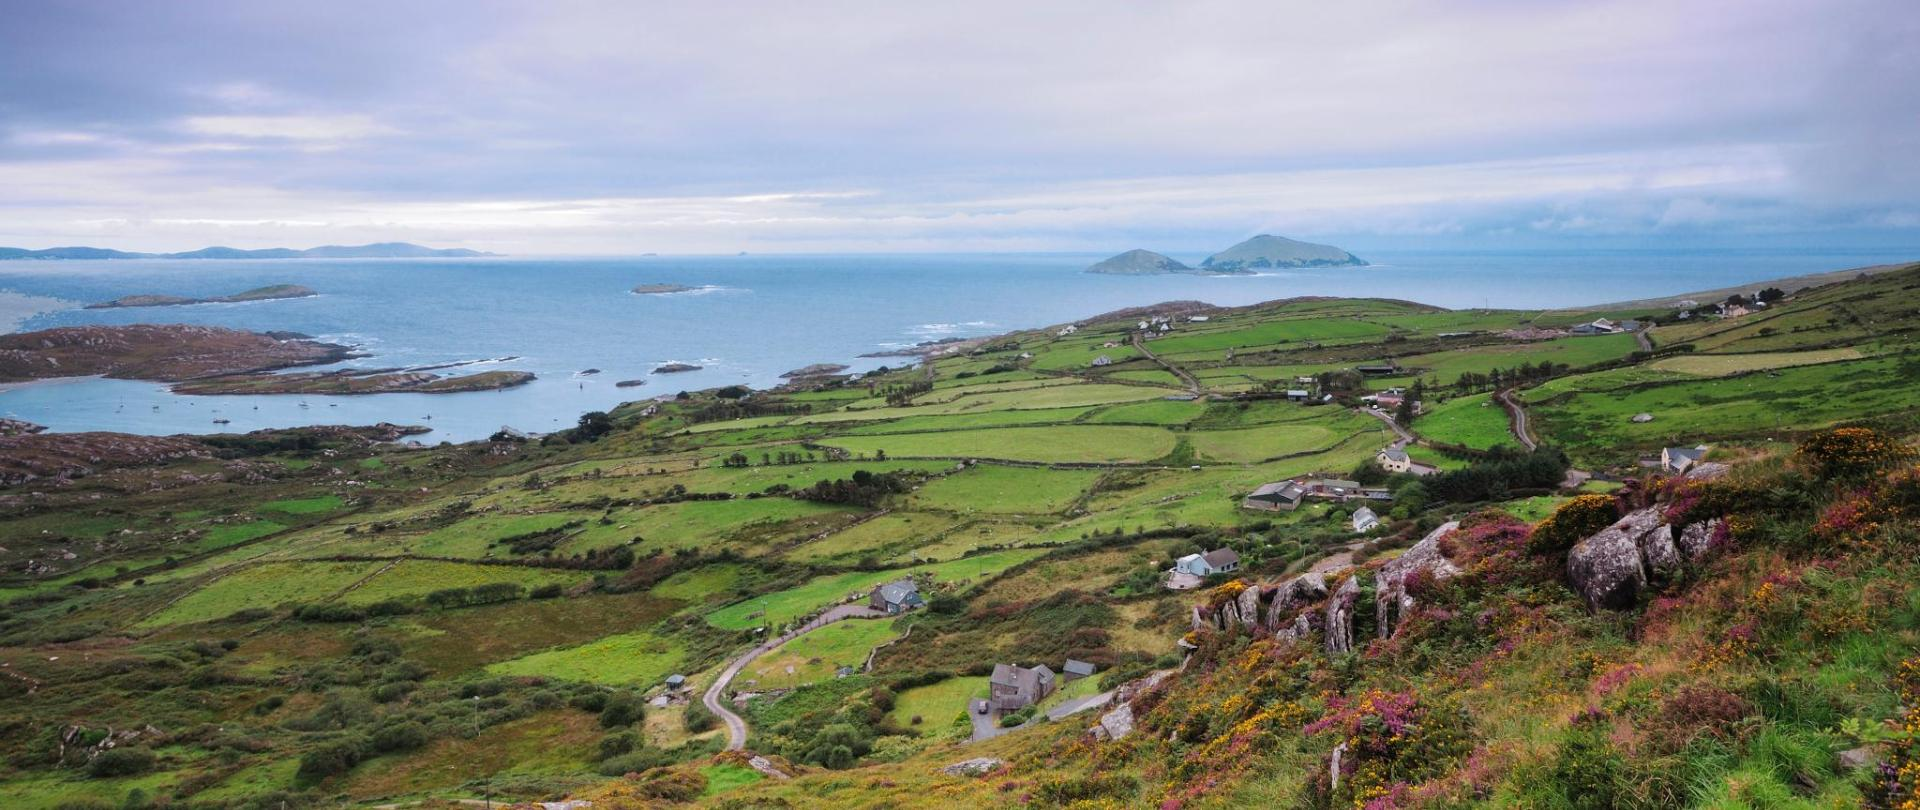 View SW from above Derrynane Park, Co Kerry.jpg